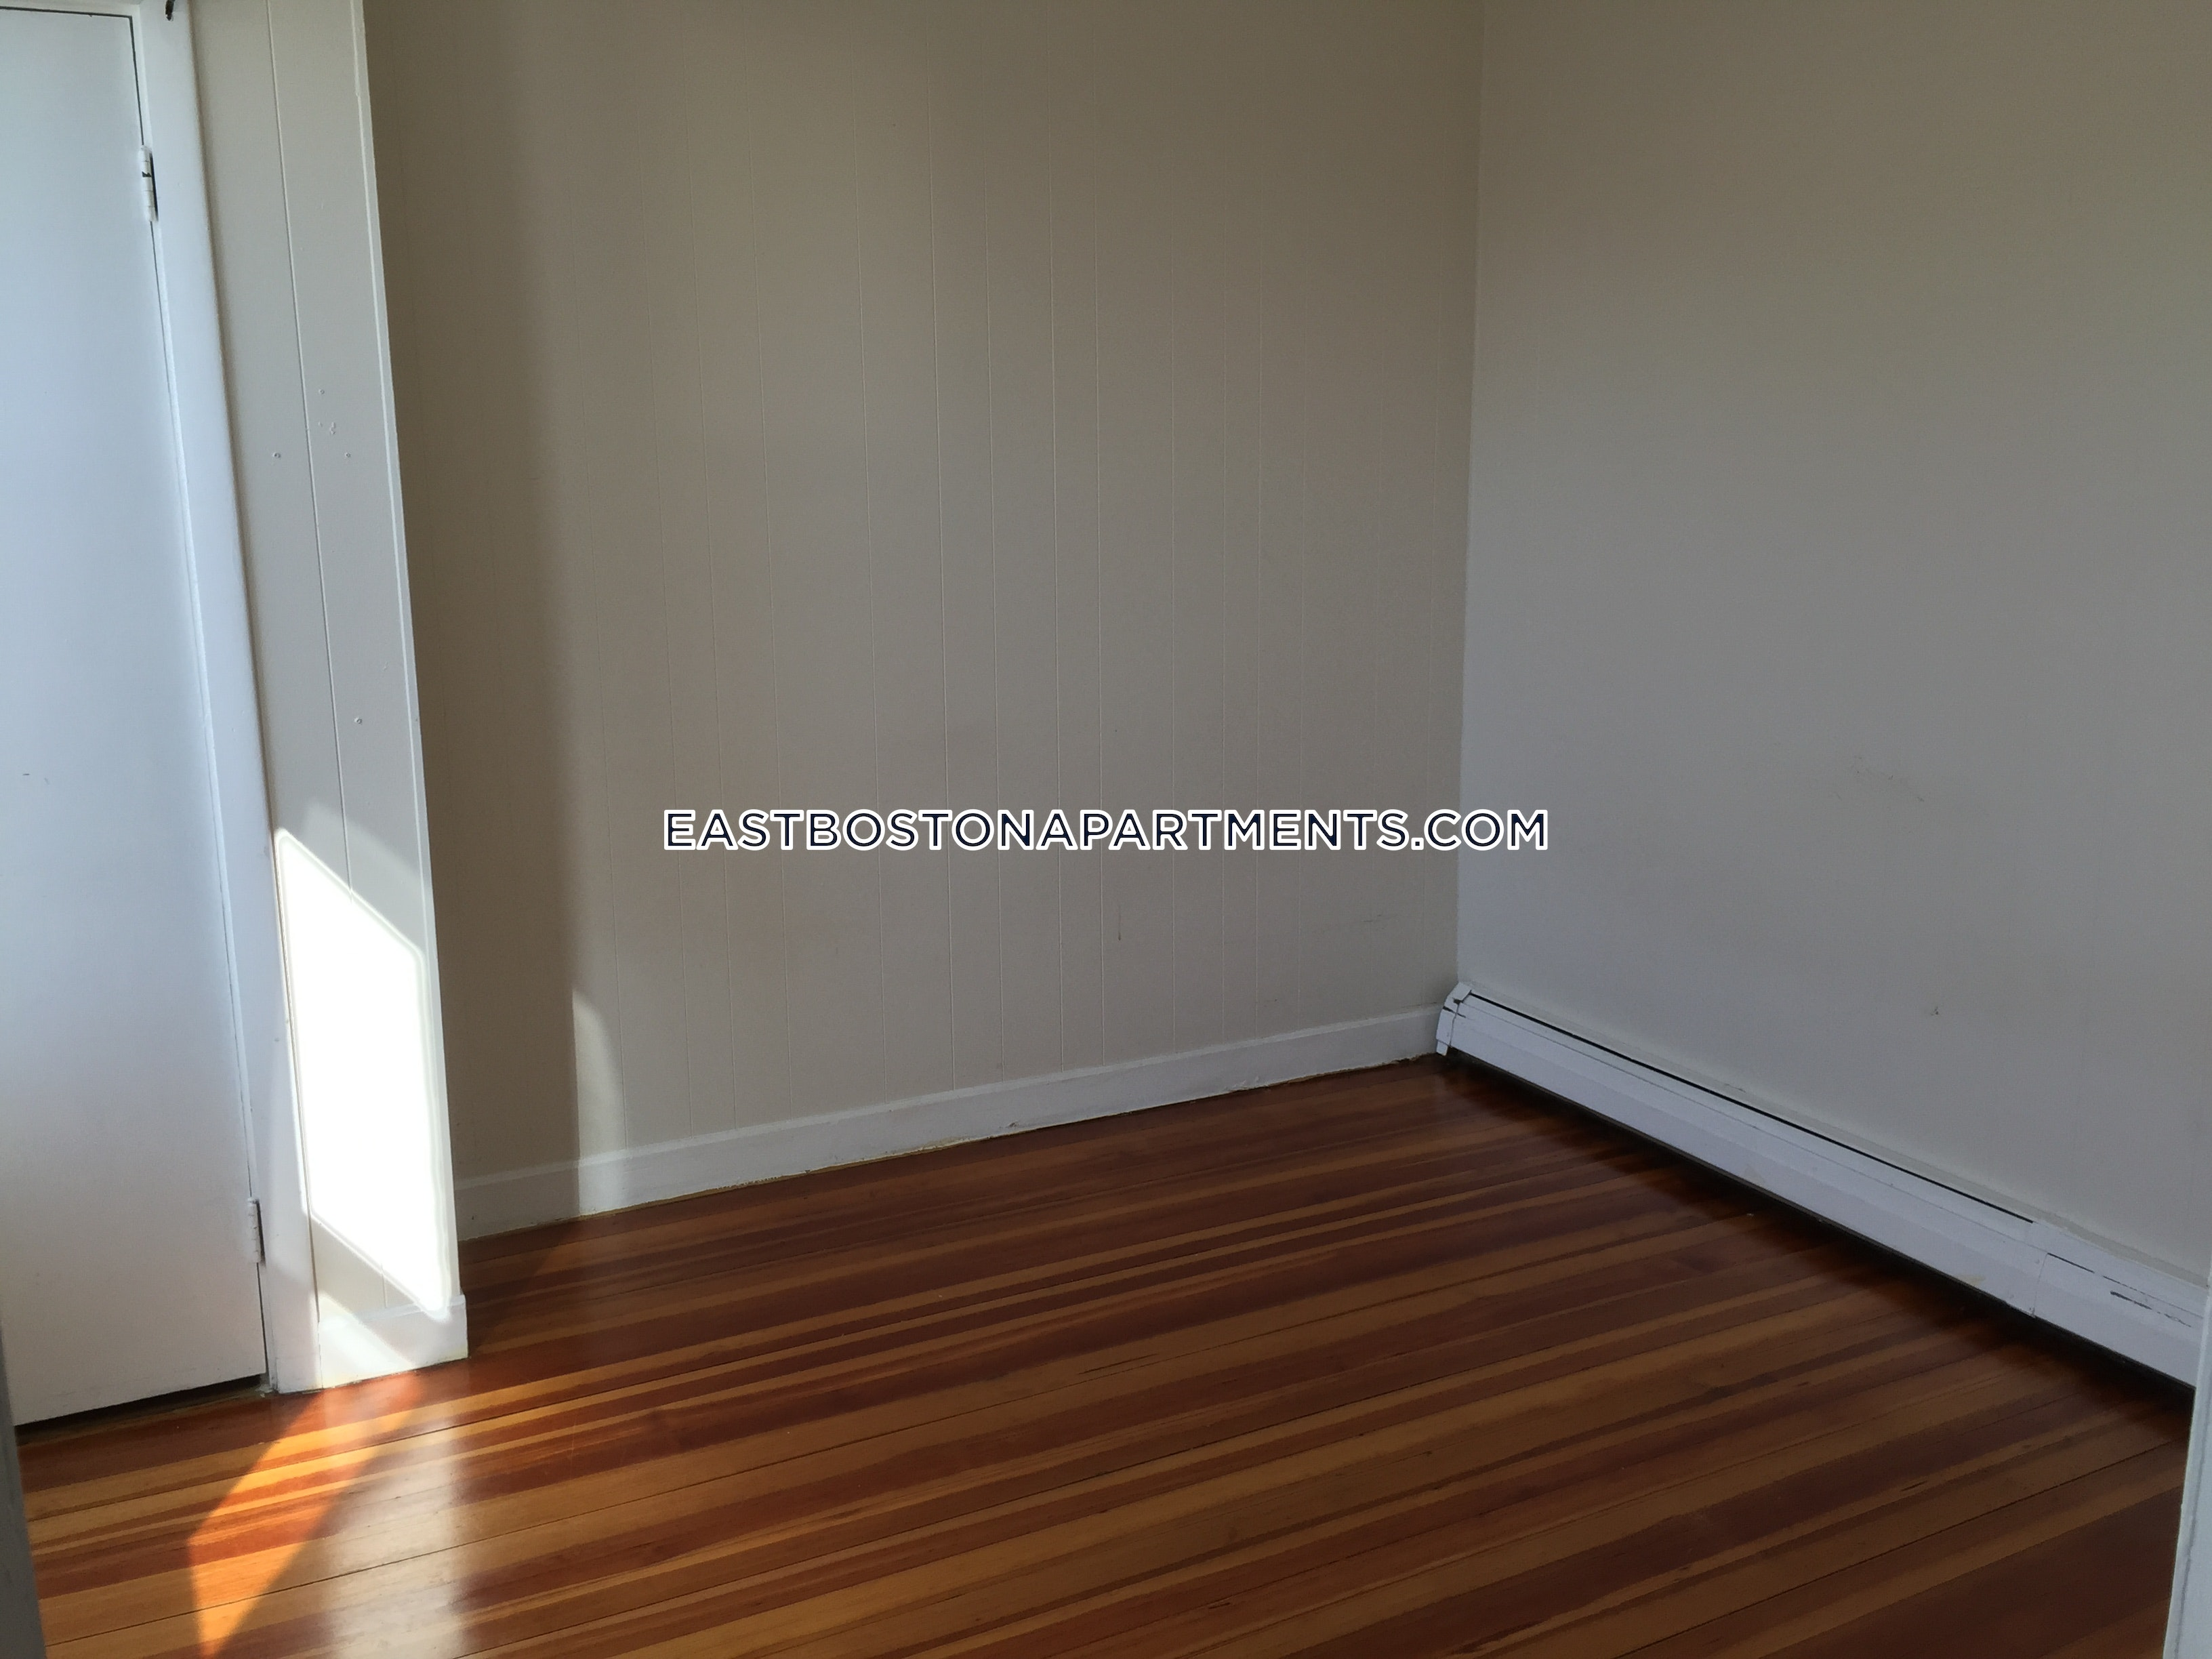 2 Beds 1 Bath - Boston - East Boston - Maverick $2,200